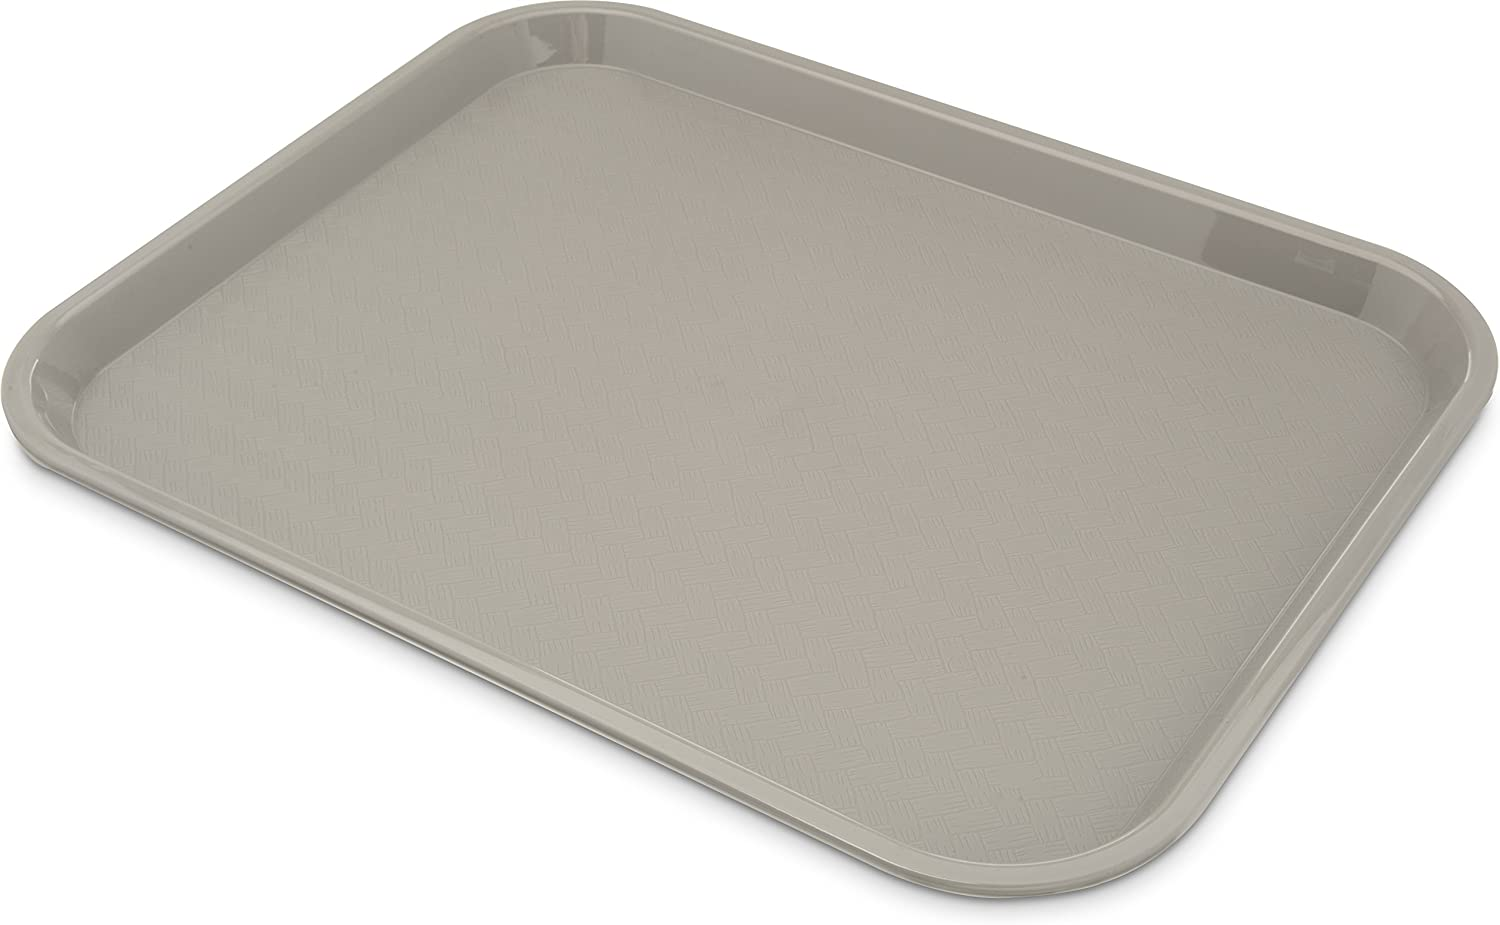 Carlisle CT141823 Café Standard Cafeteria / Fast Food Tray, 14